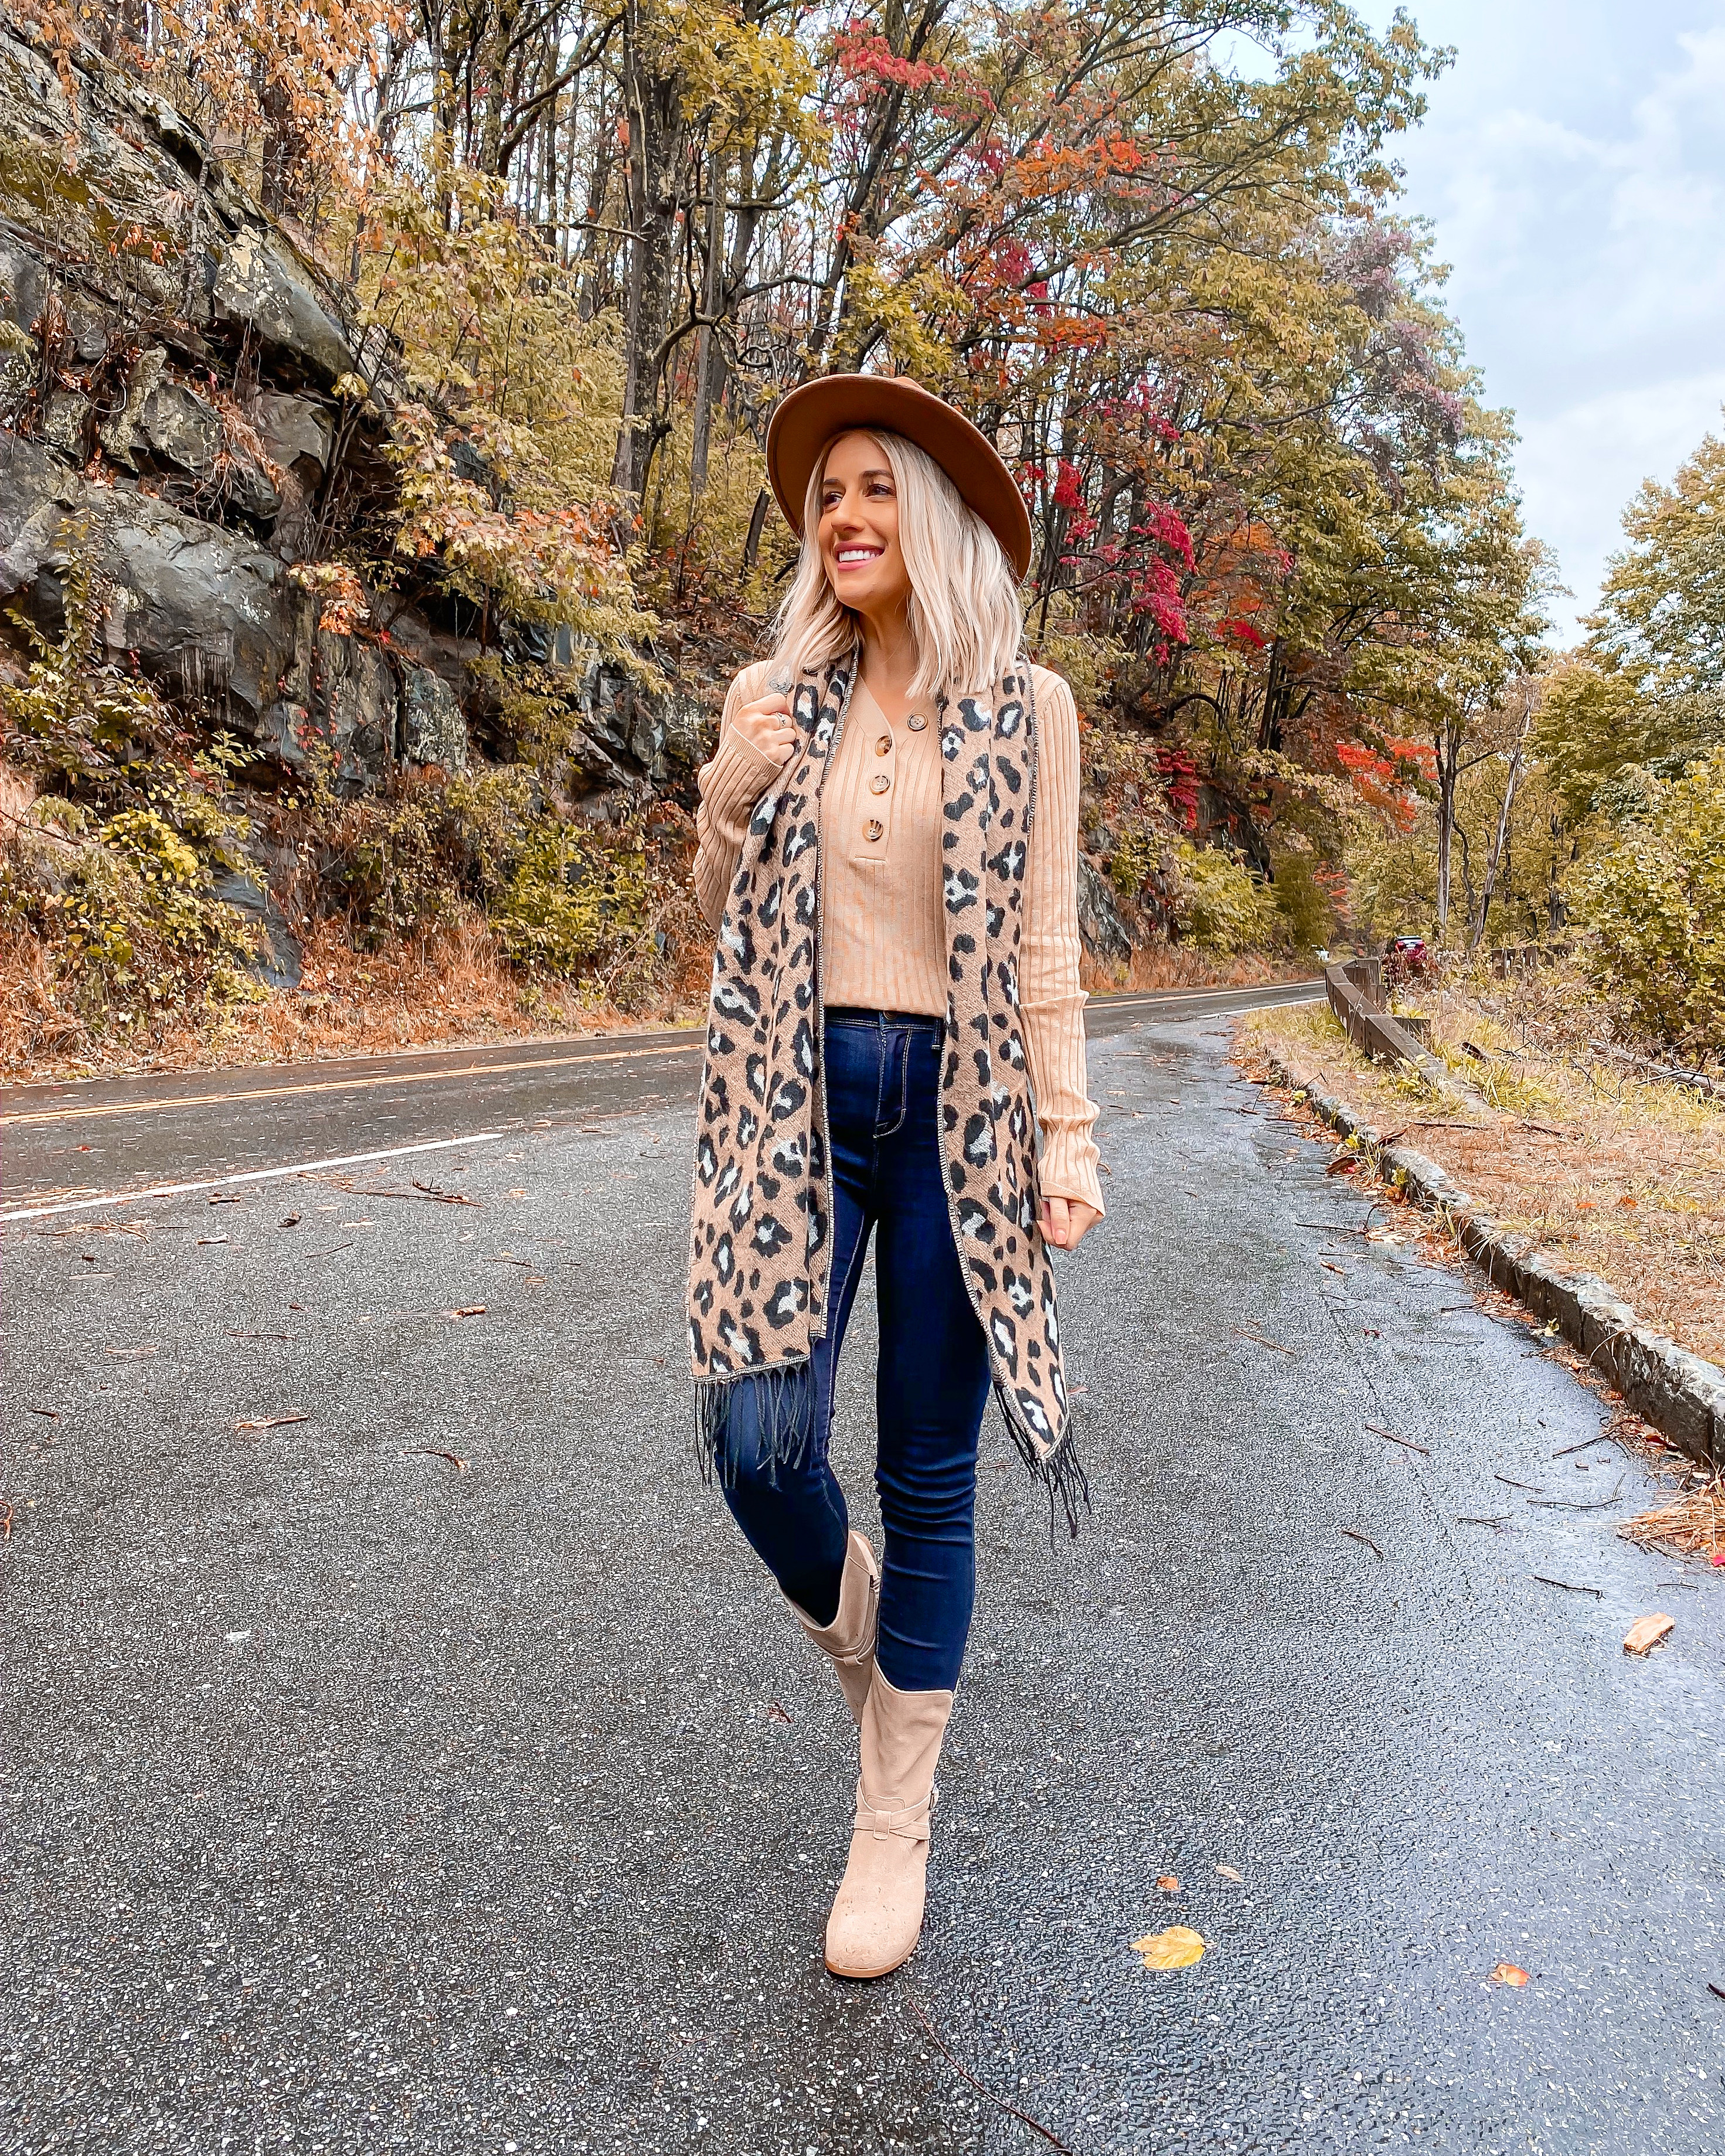 AFFORDABLE FALL OUTFIT UNDER $20 SMOKEY MOUNTAINS LAURA BEVERLIN LEOPARD SCARF 1